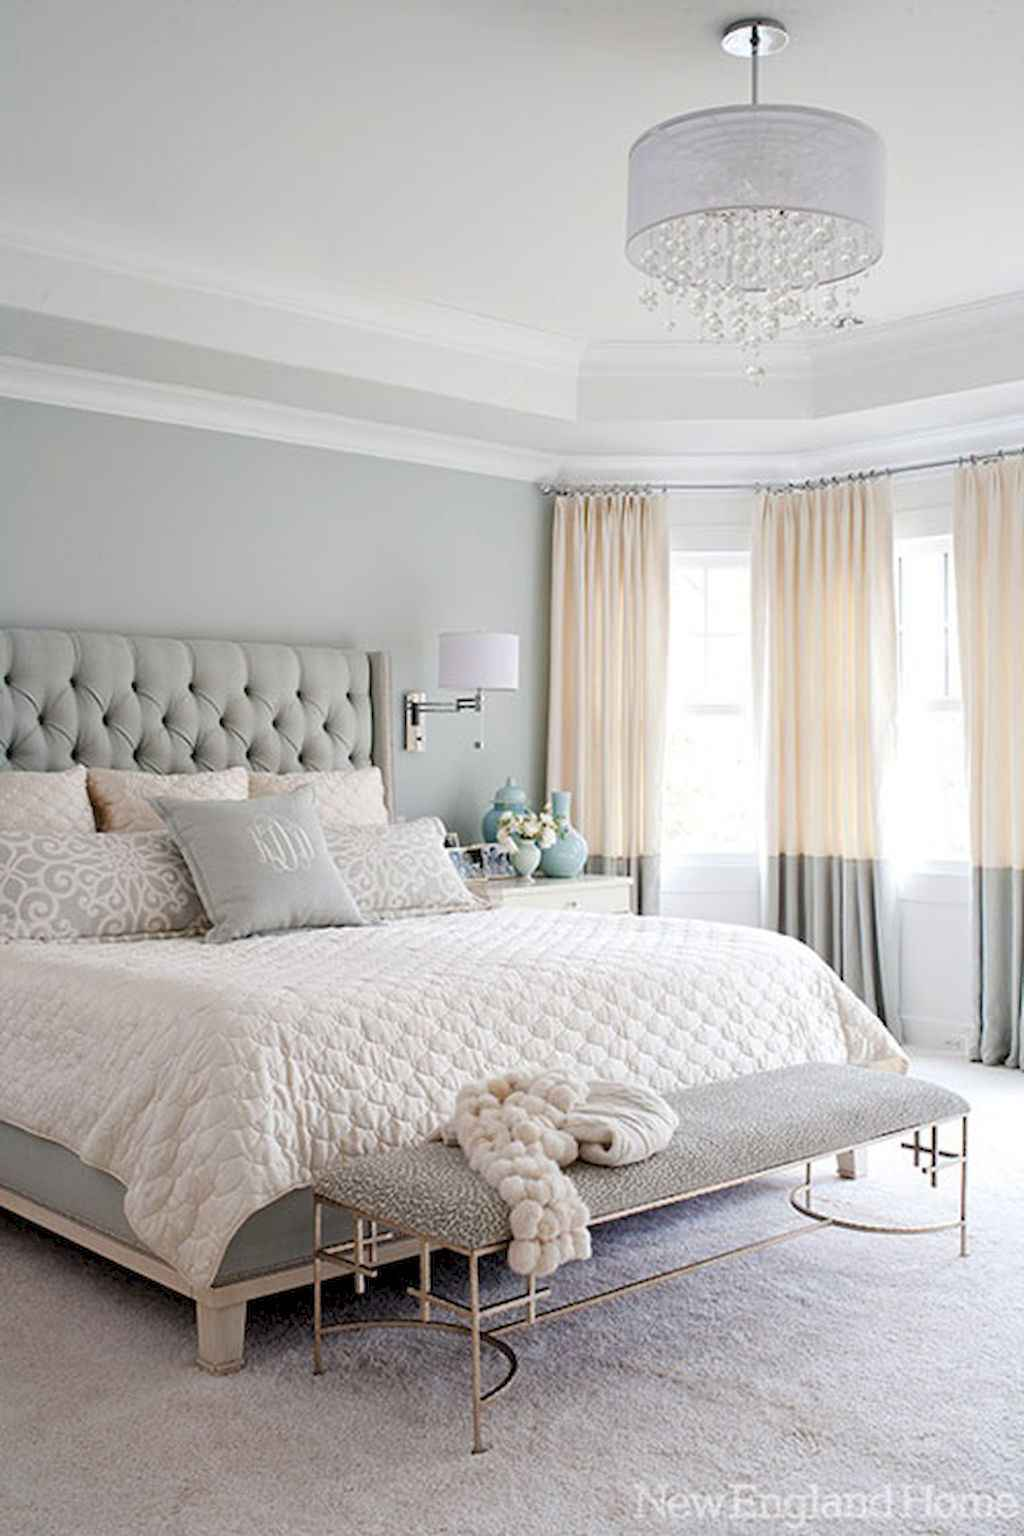 Awesome bedroom decoration ideas (5)